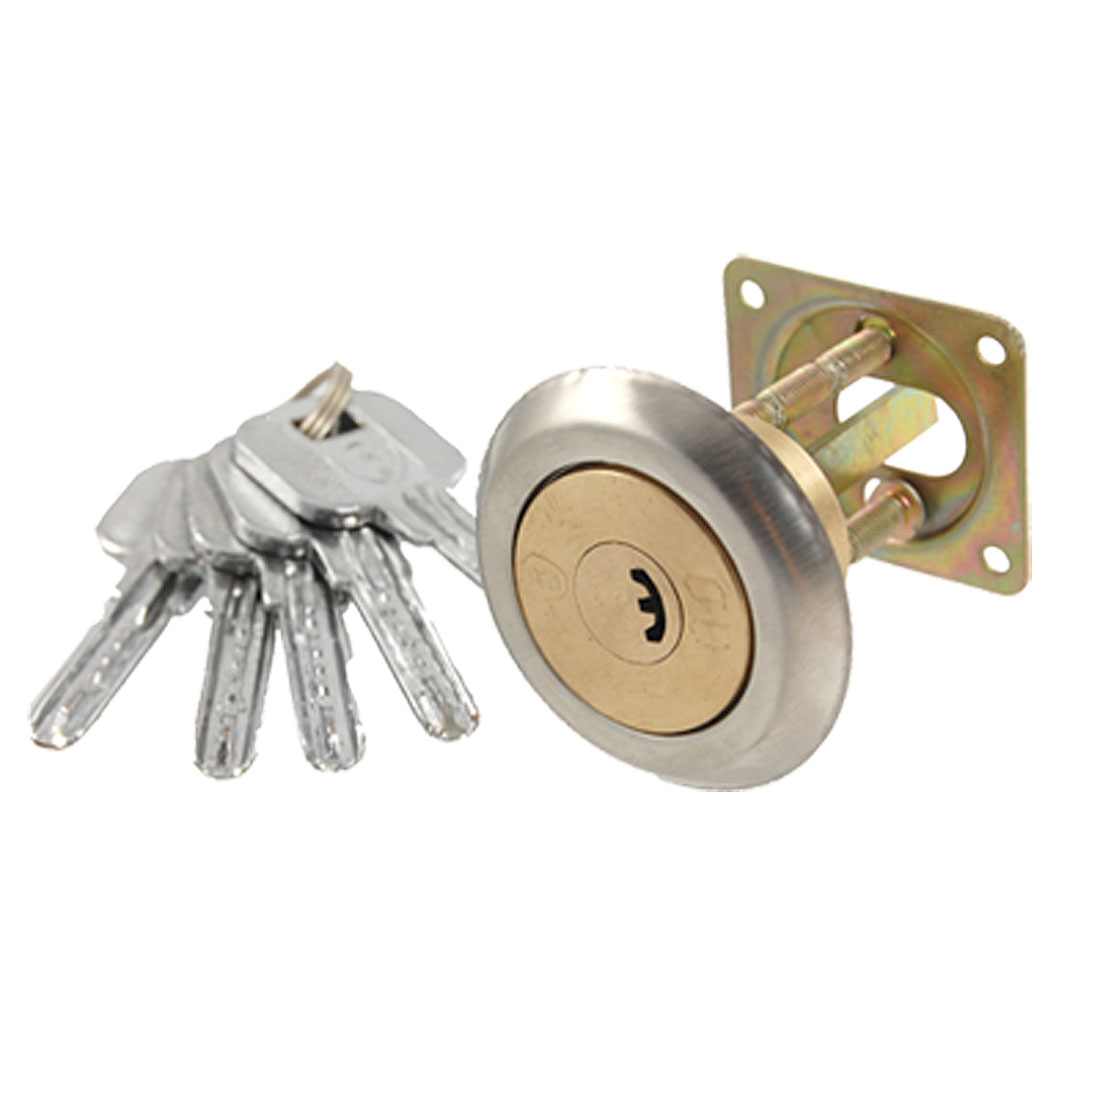 Garage Door Security Brass Tone Tapered Ned Lock w Keys